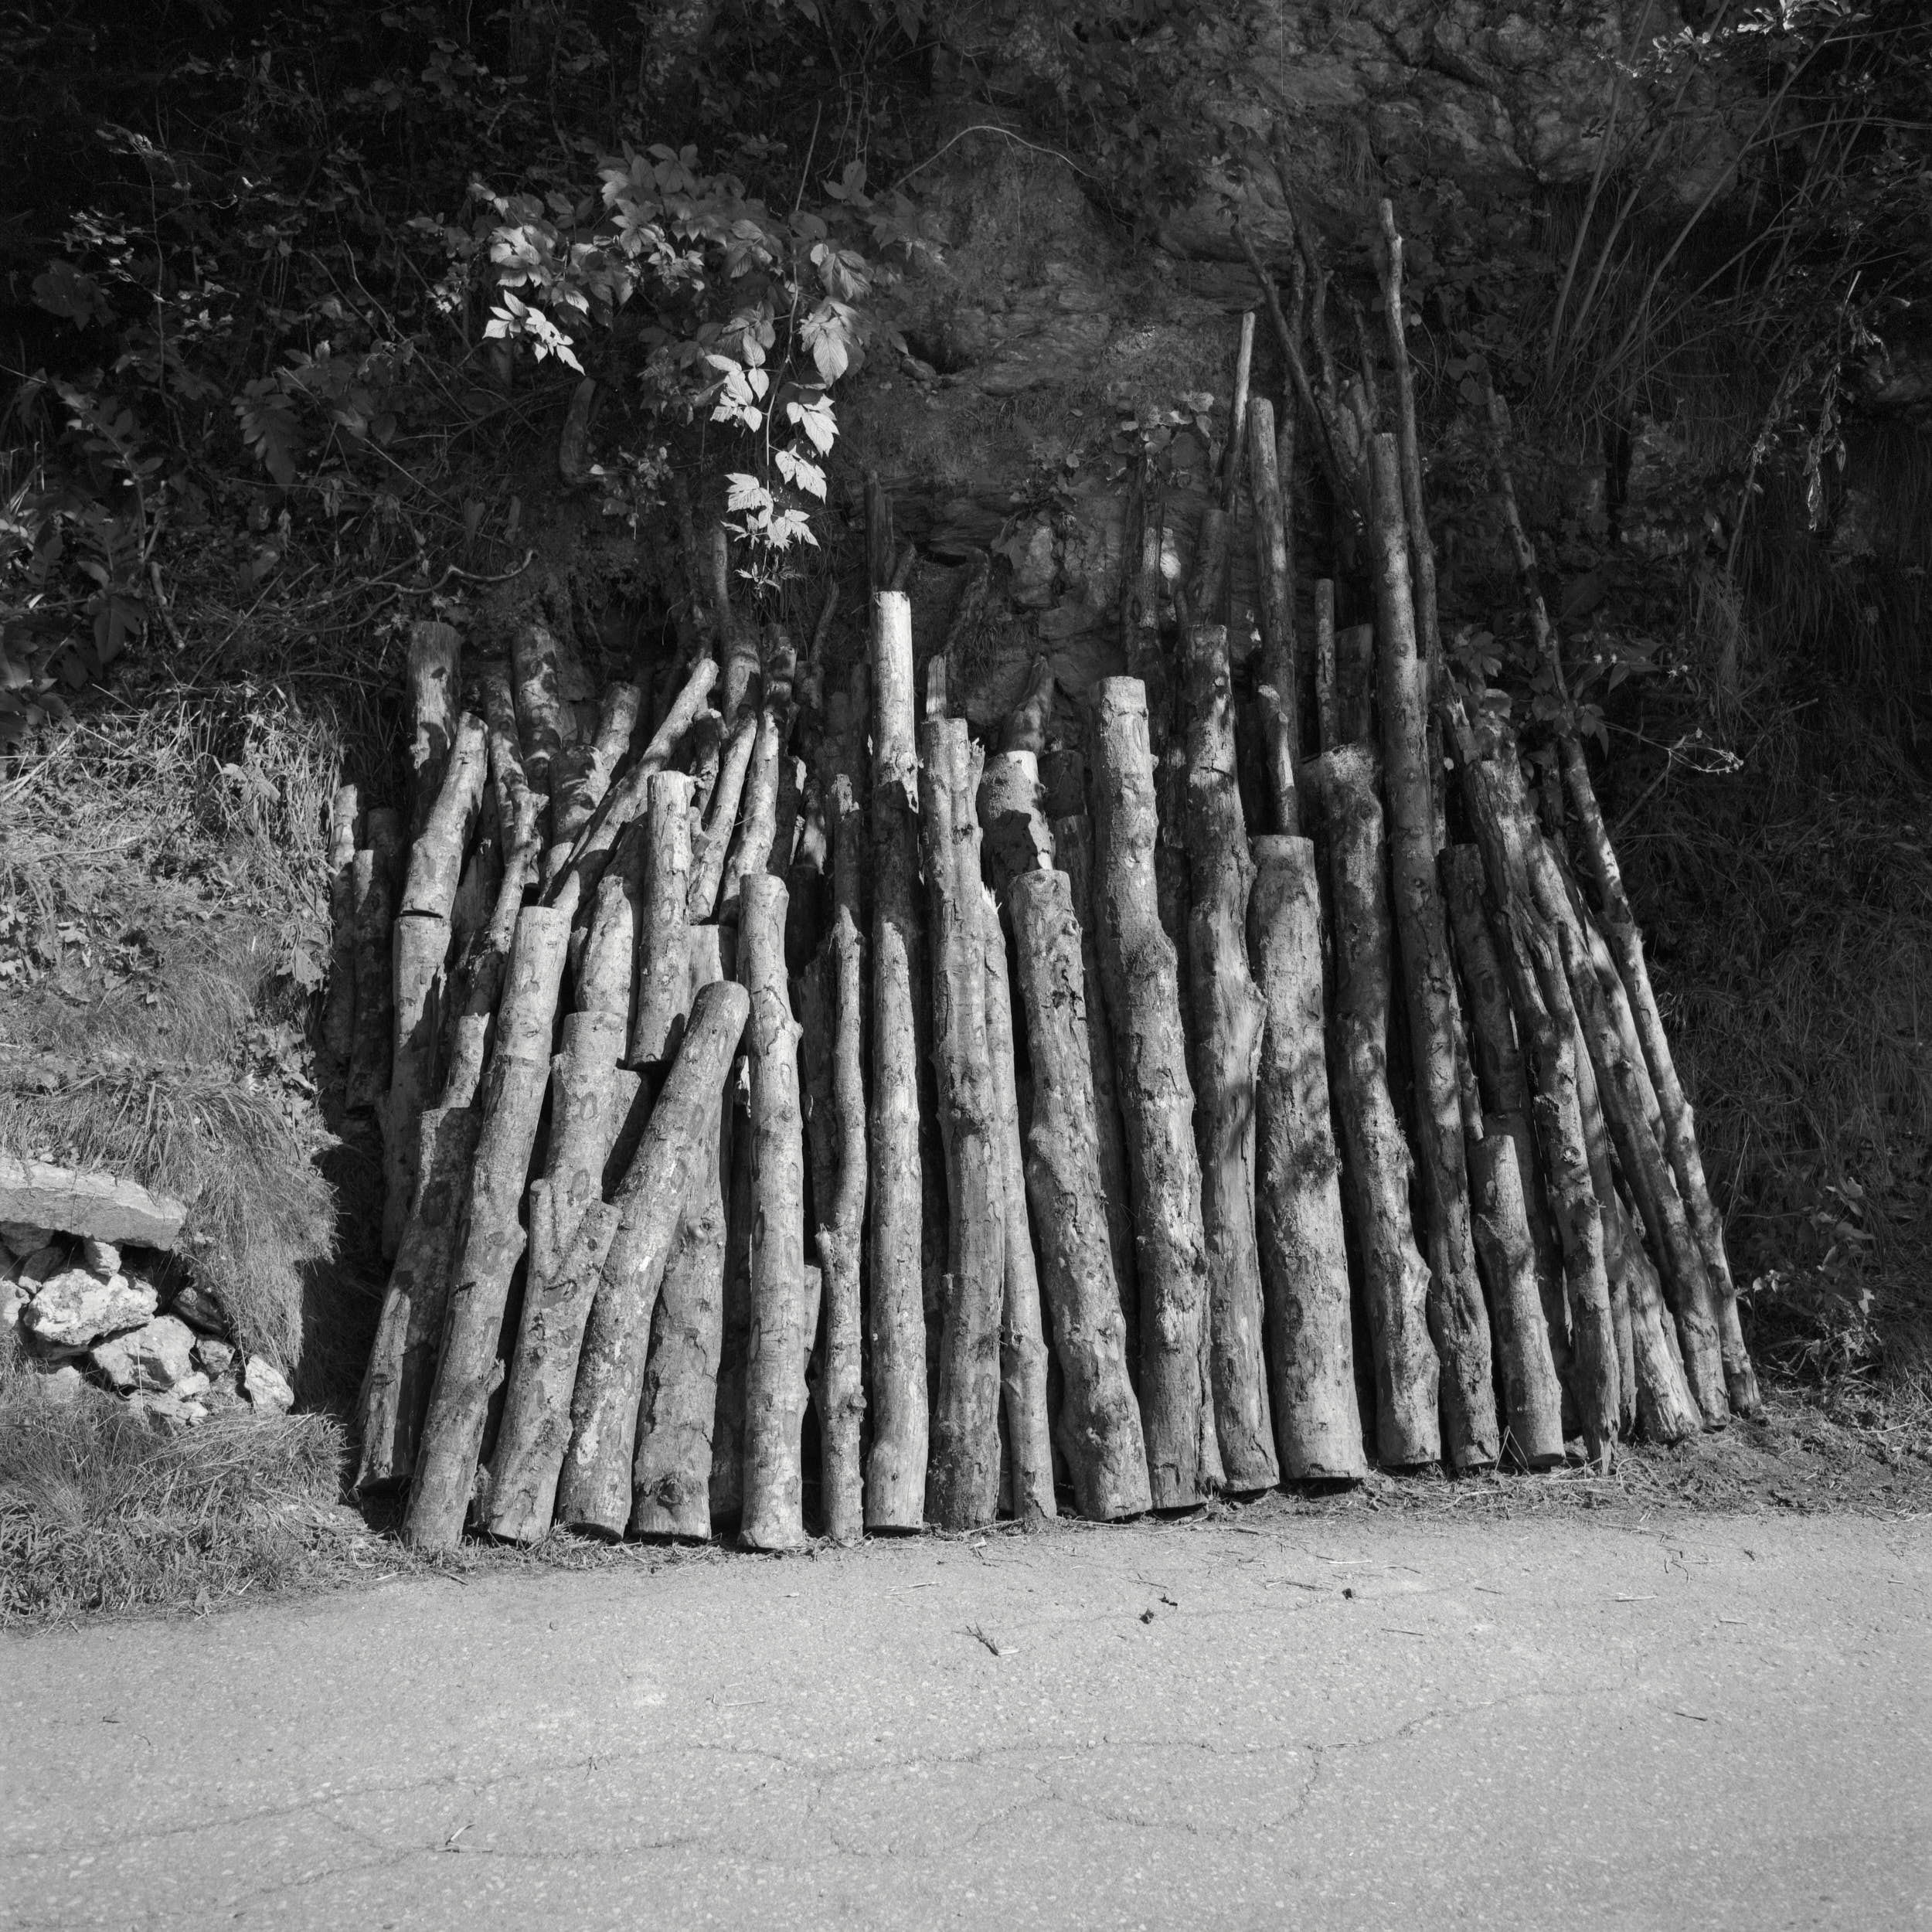 Tree logs aligned on the side of a road. Shot on black and white medium format film.